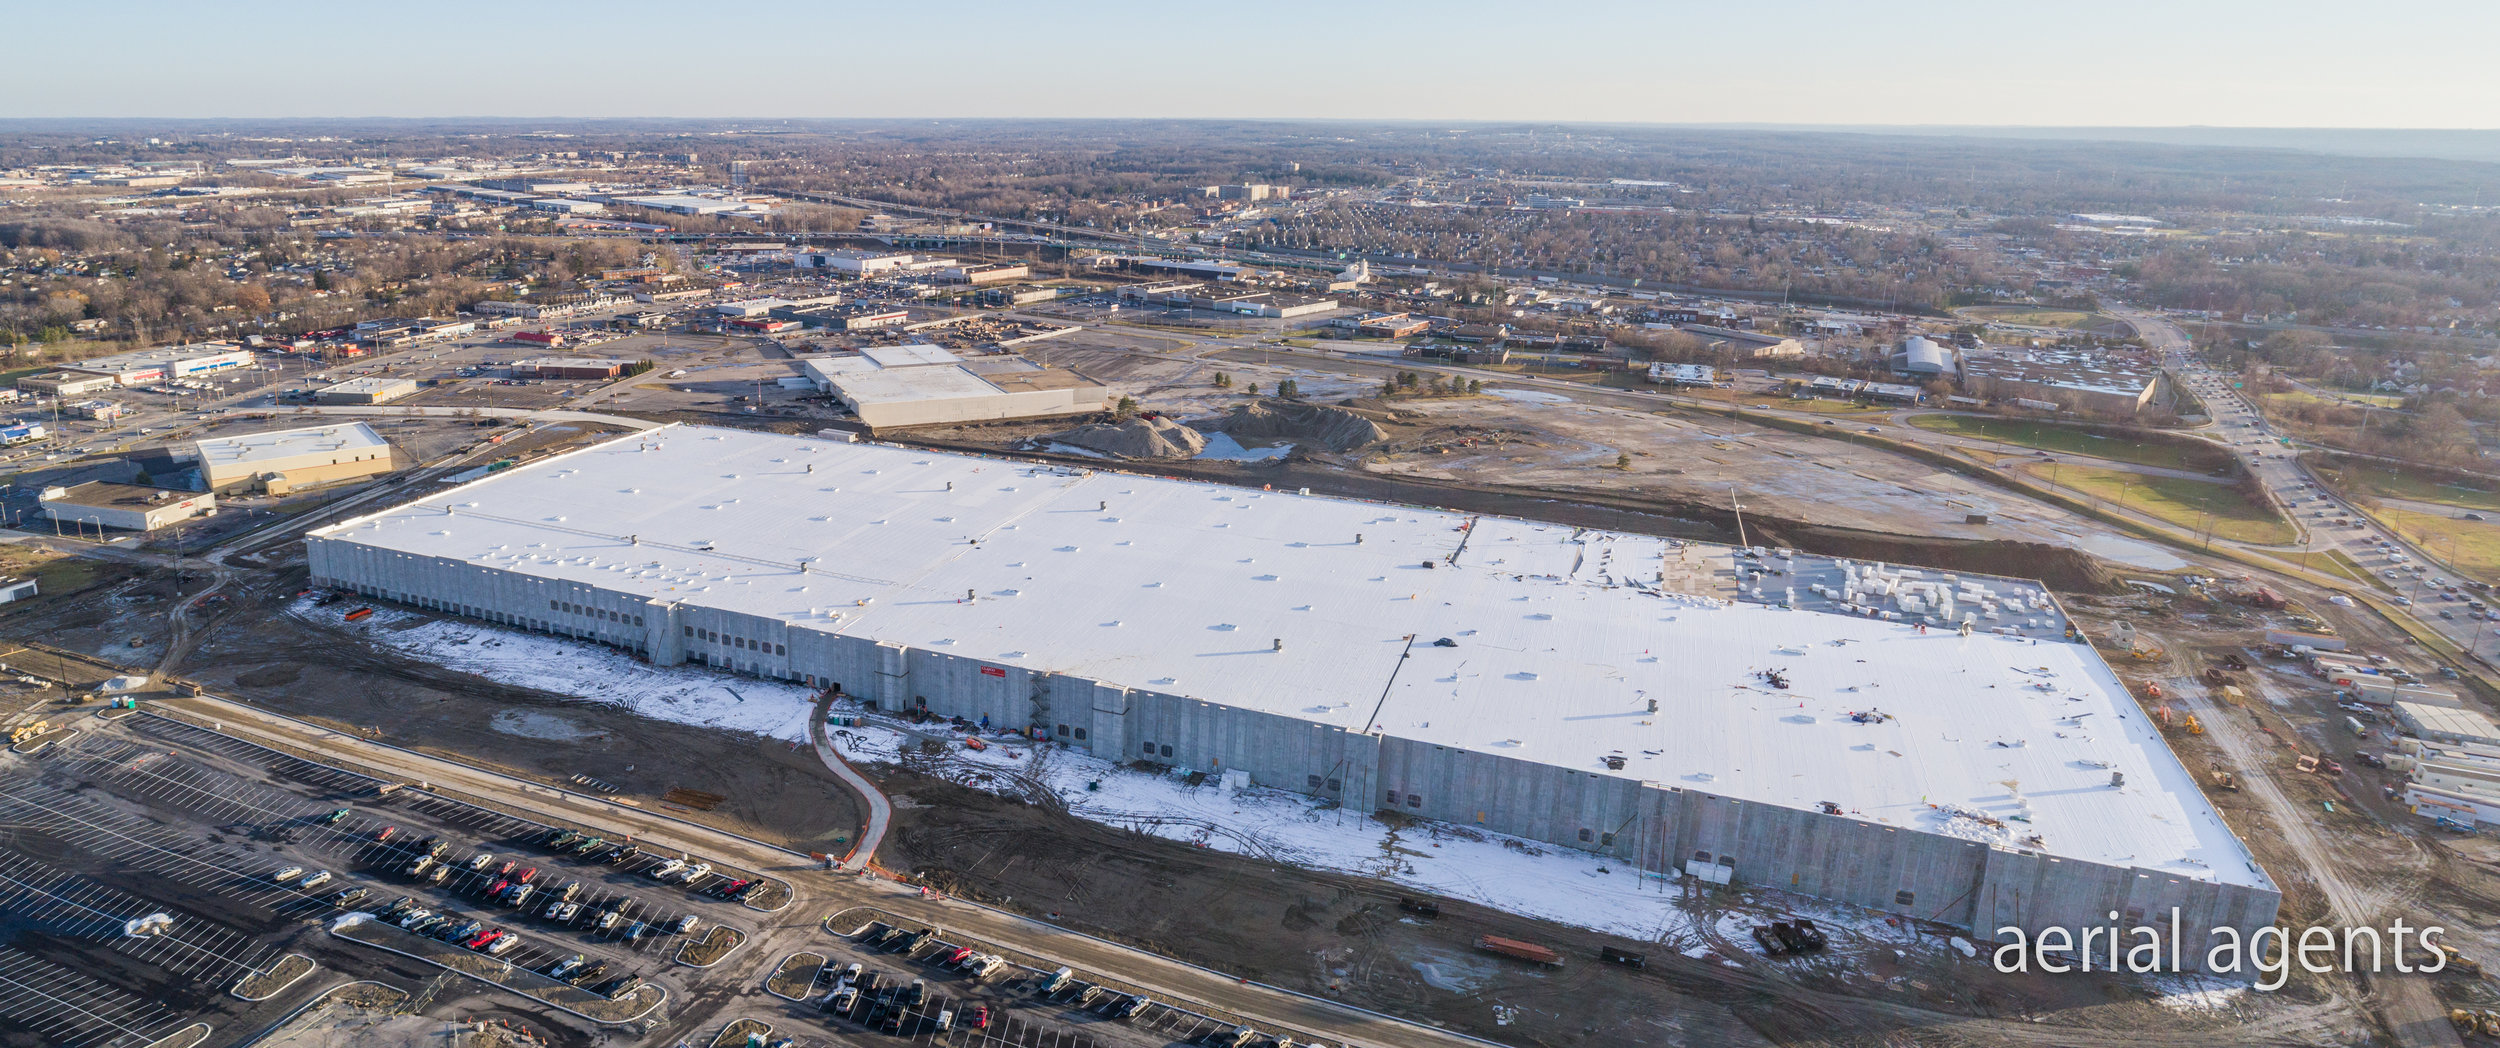 Amazon Fulfillment Center_AERIAL-8.jpg